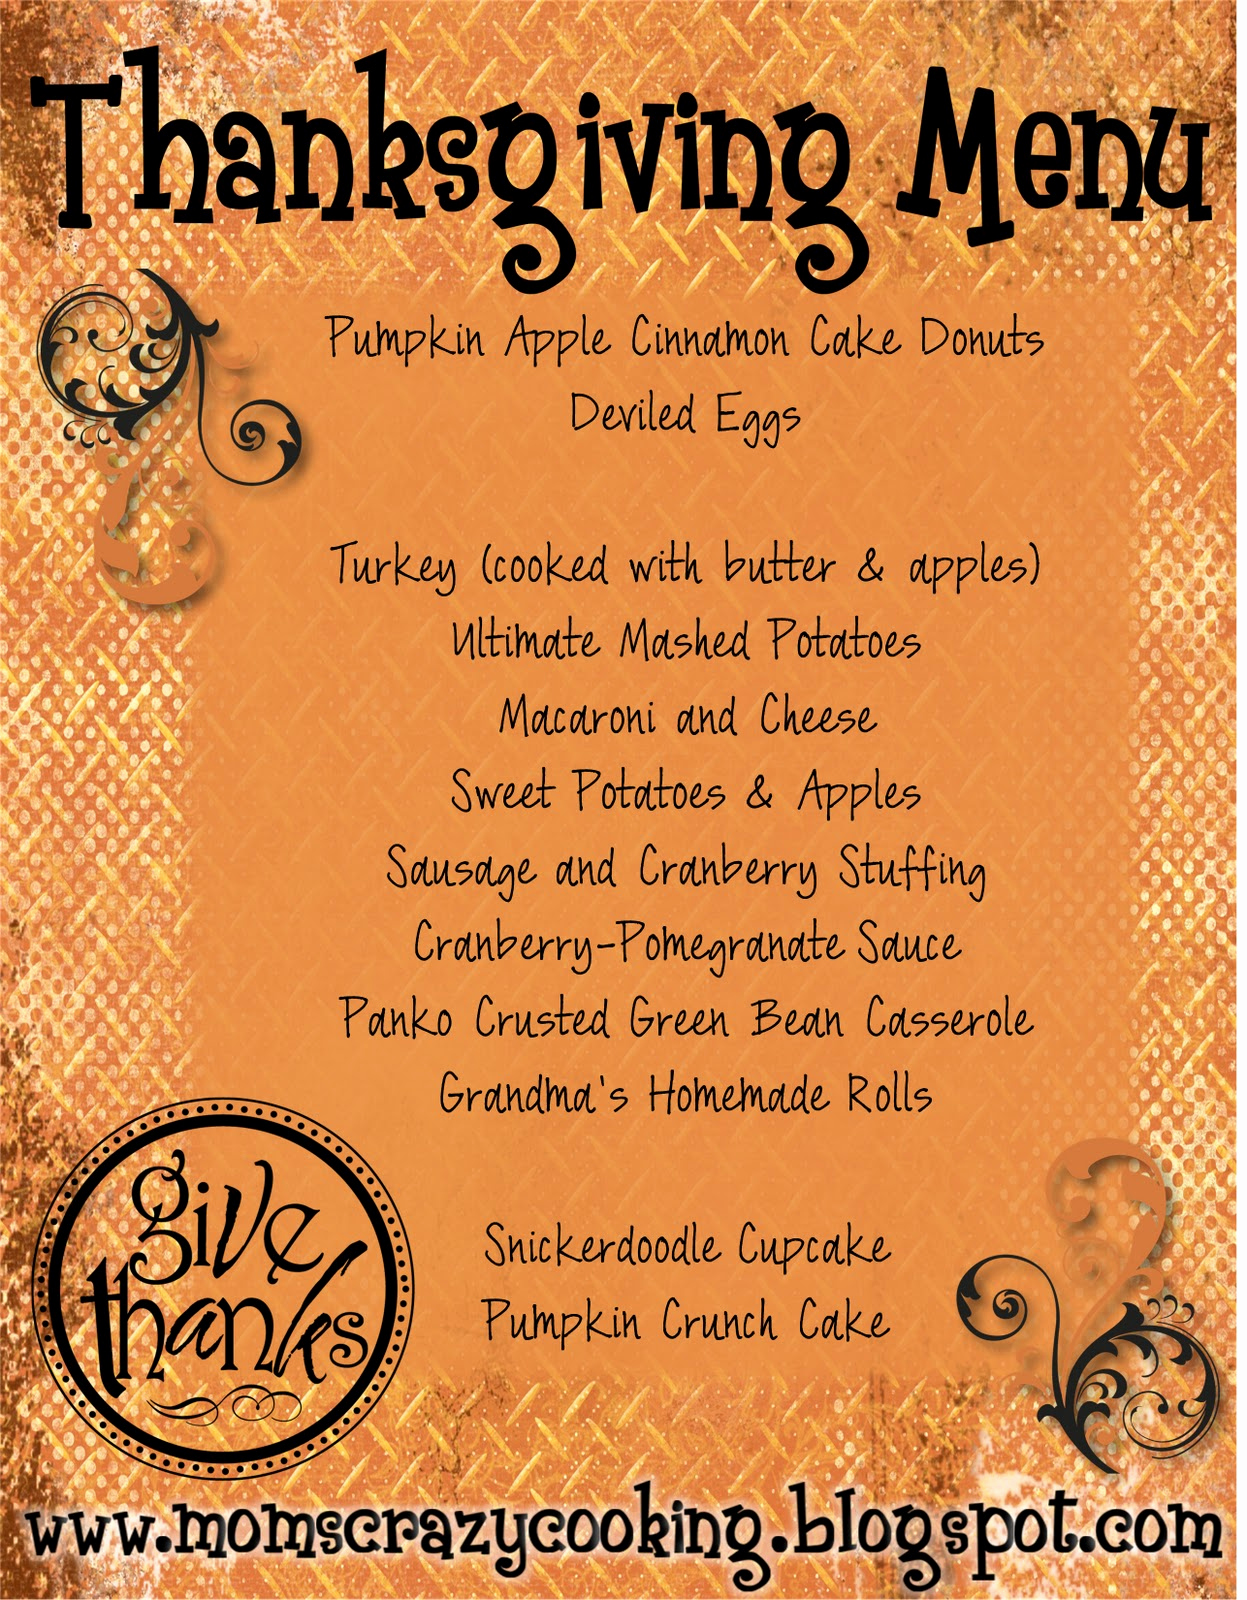 Thanksgiving Day Menu Template Awesome Moms Crazy Cooking Thanksgiving Turkey Treats & My